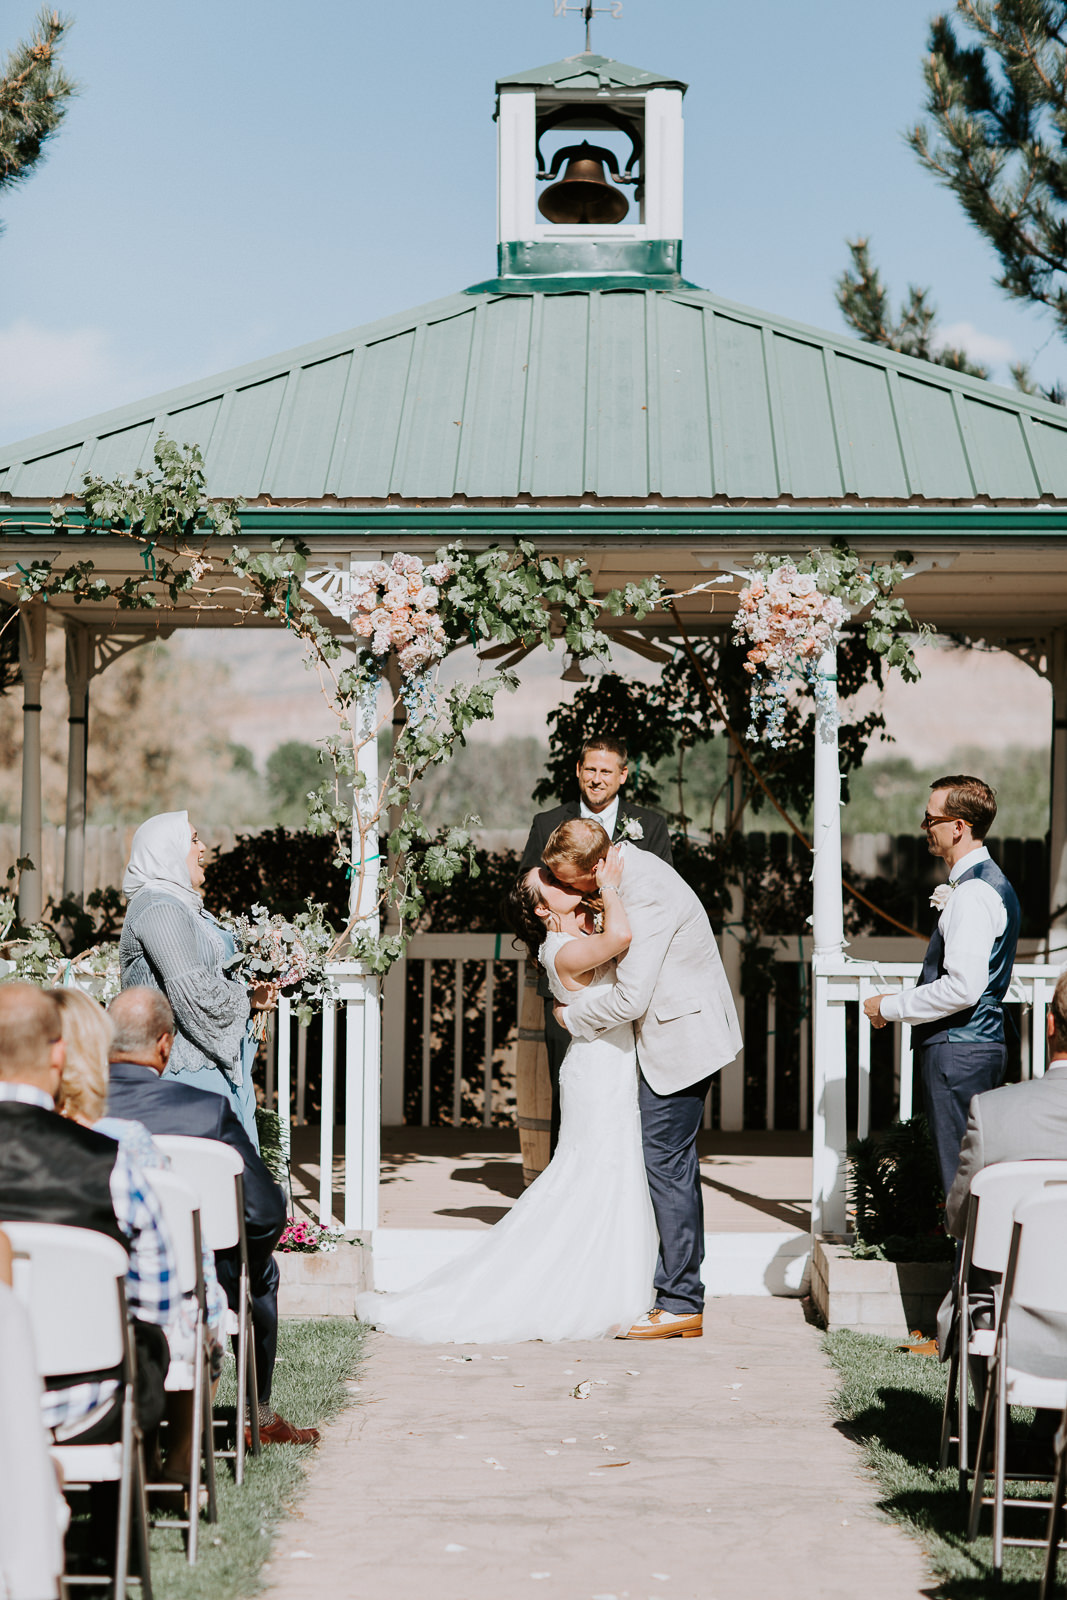 Bride and groom kissing in front of gazebo at end of wedding ceremony in Palisade, Colorado